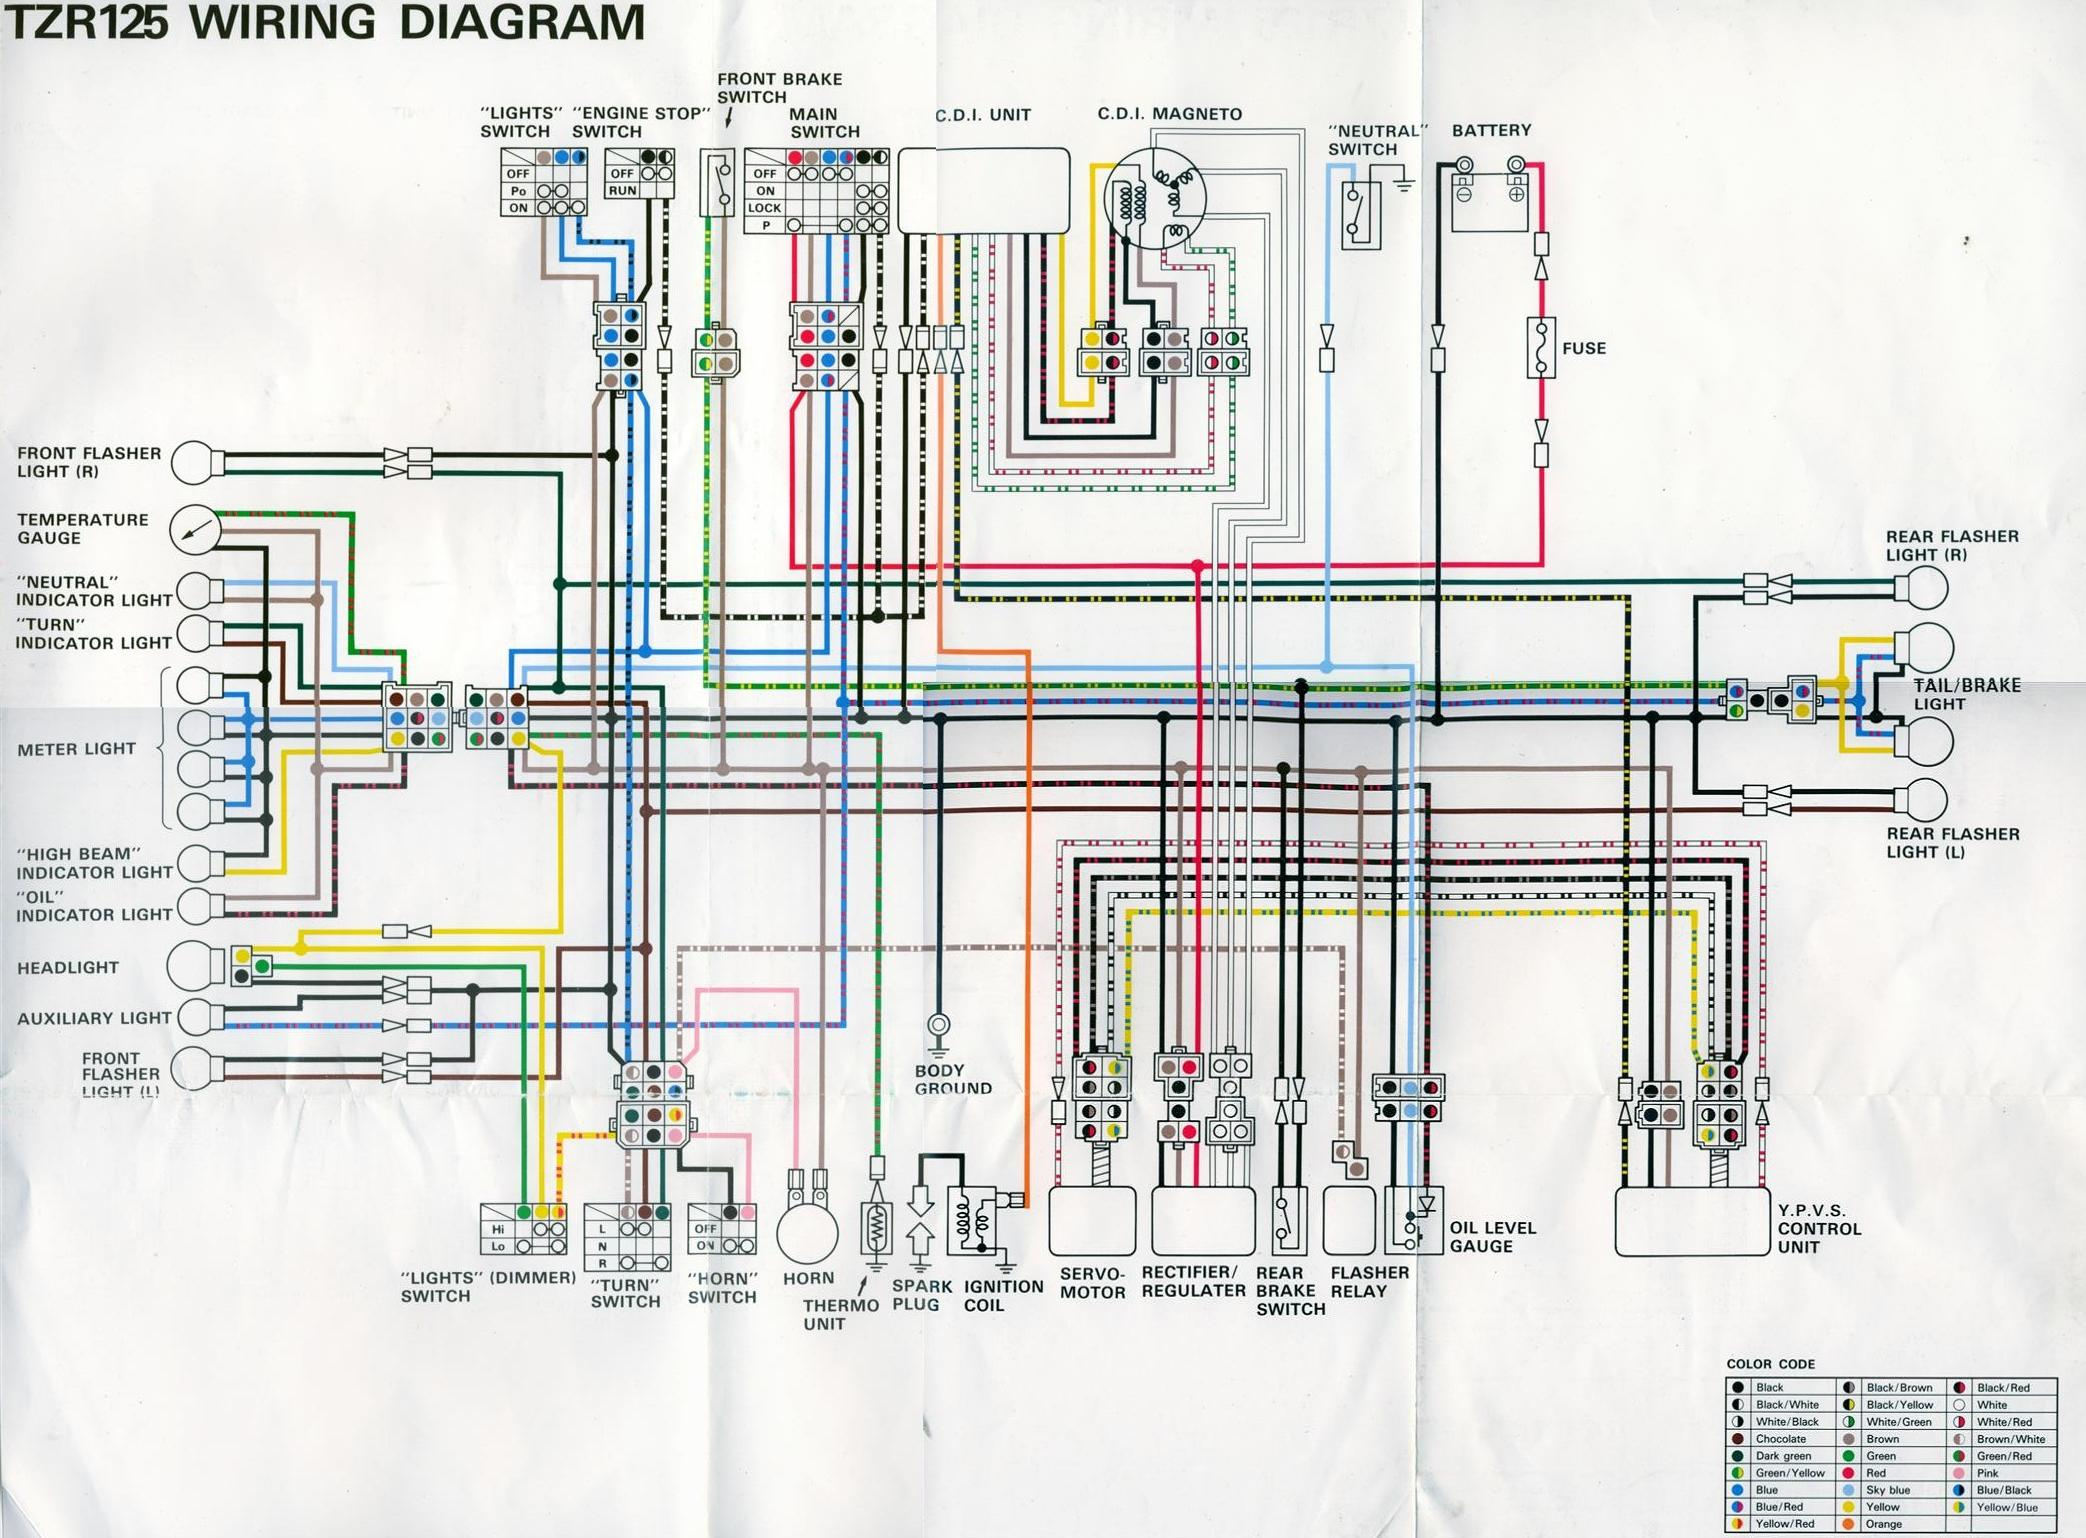 taotao 50cc scooter wiring diagram on taotao images free download 50cc Scooter Wiring Harness taotao 50cc scooter wiring diagram 11 tao tao 50 wiring diagram 50cc chinese scooter wiring diagram 50cc scooter wiring harness